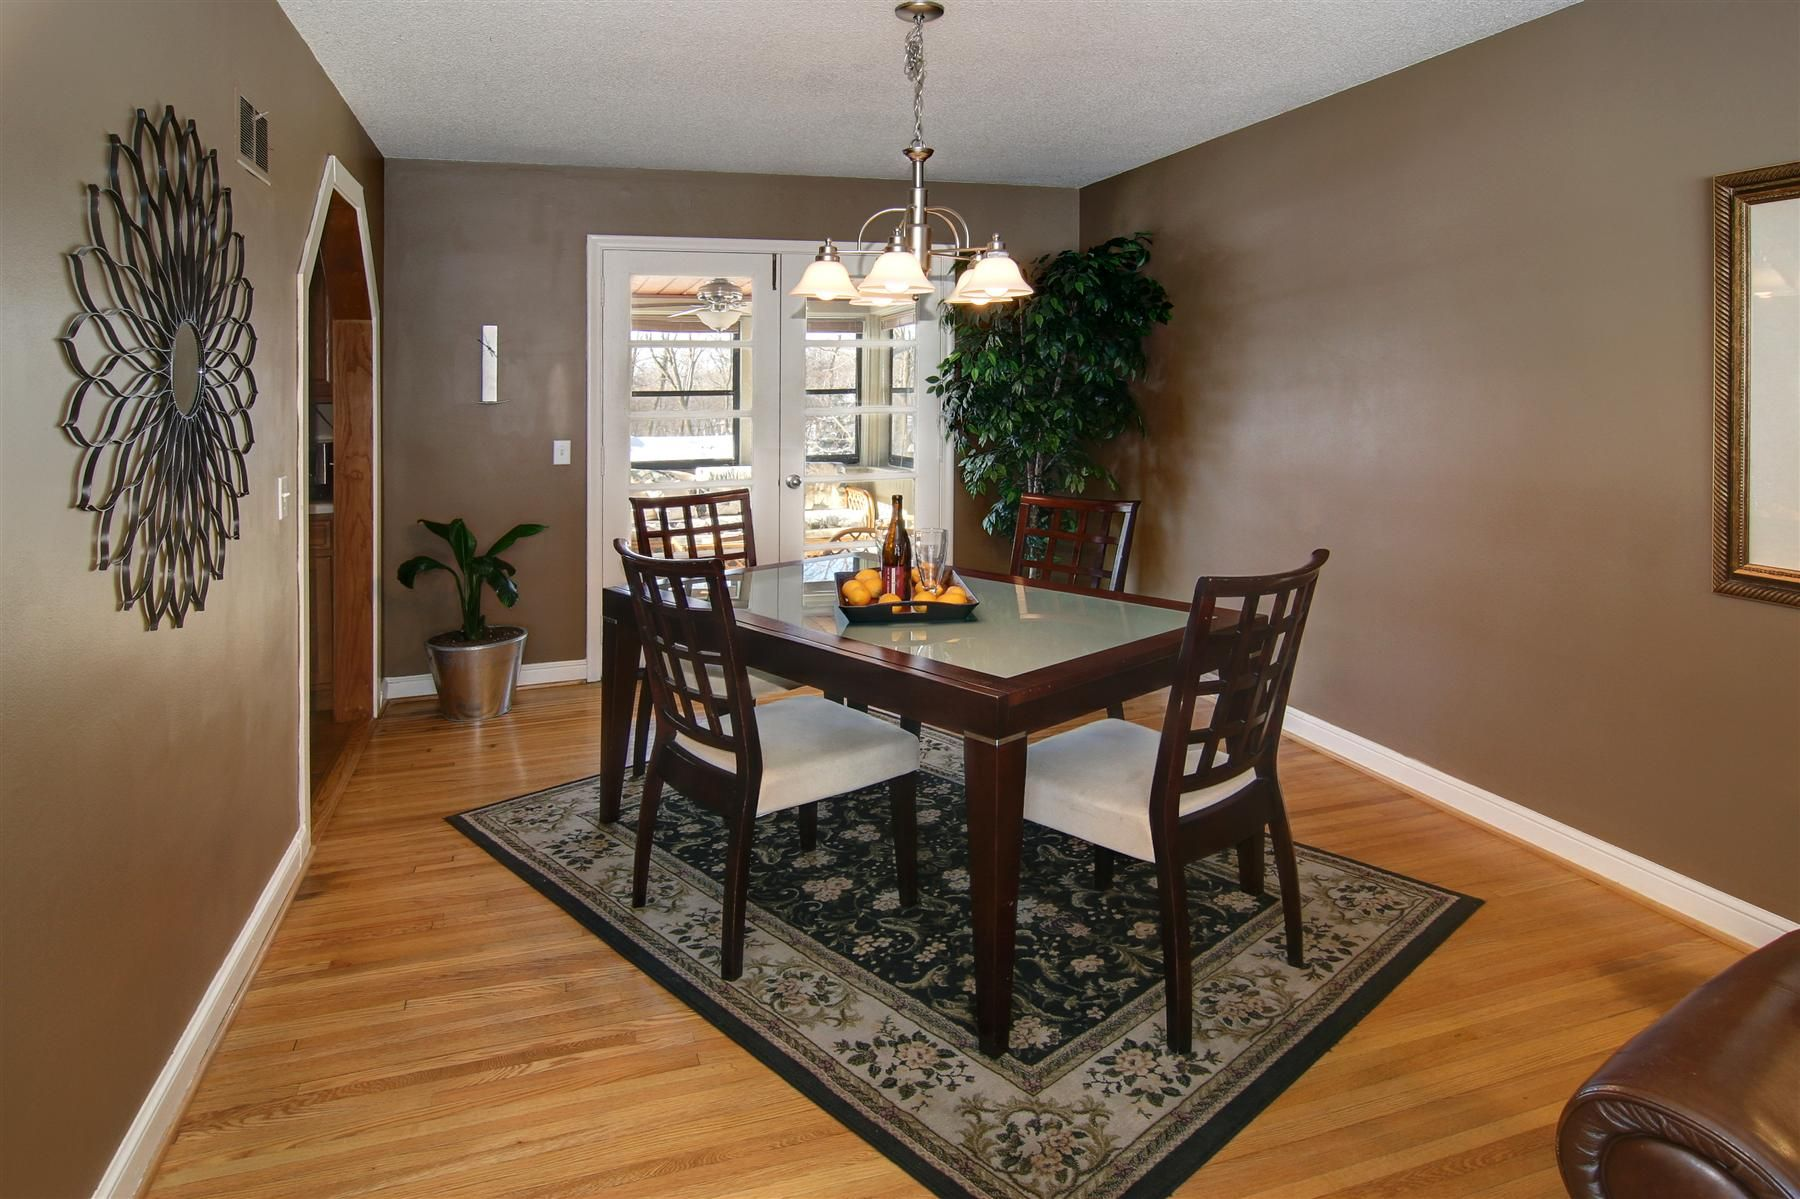 pier 1 living room rugs%0A    Rugs That Showcase Their Power Under the Dining Table